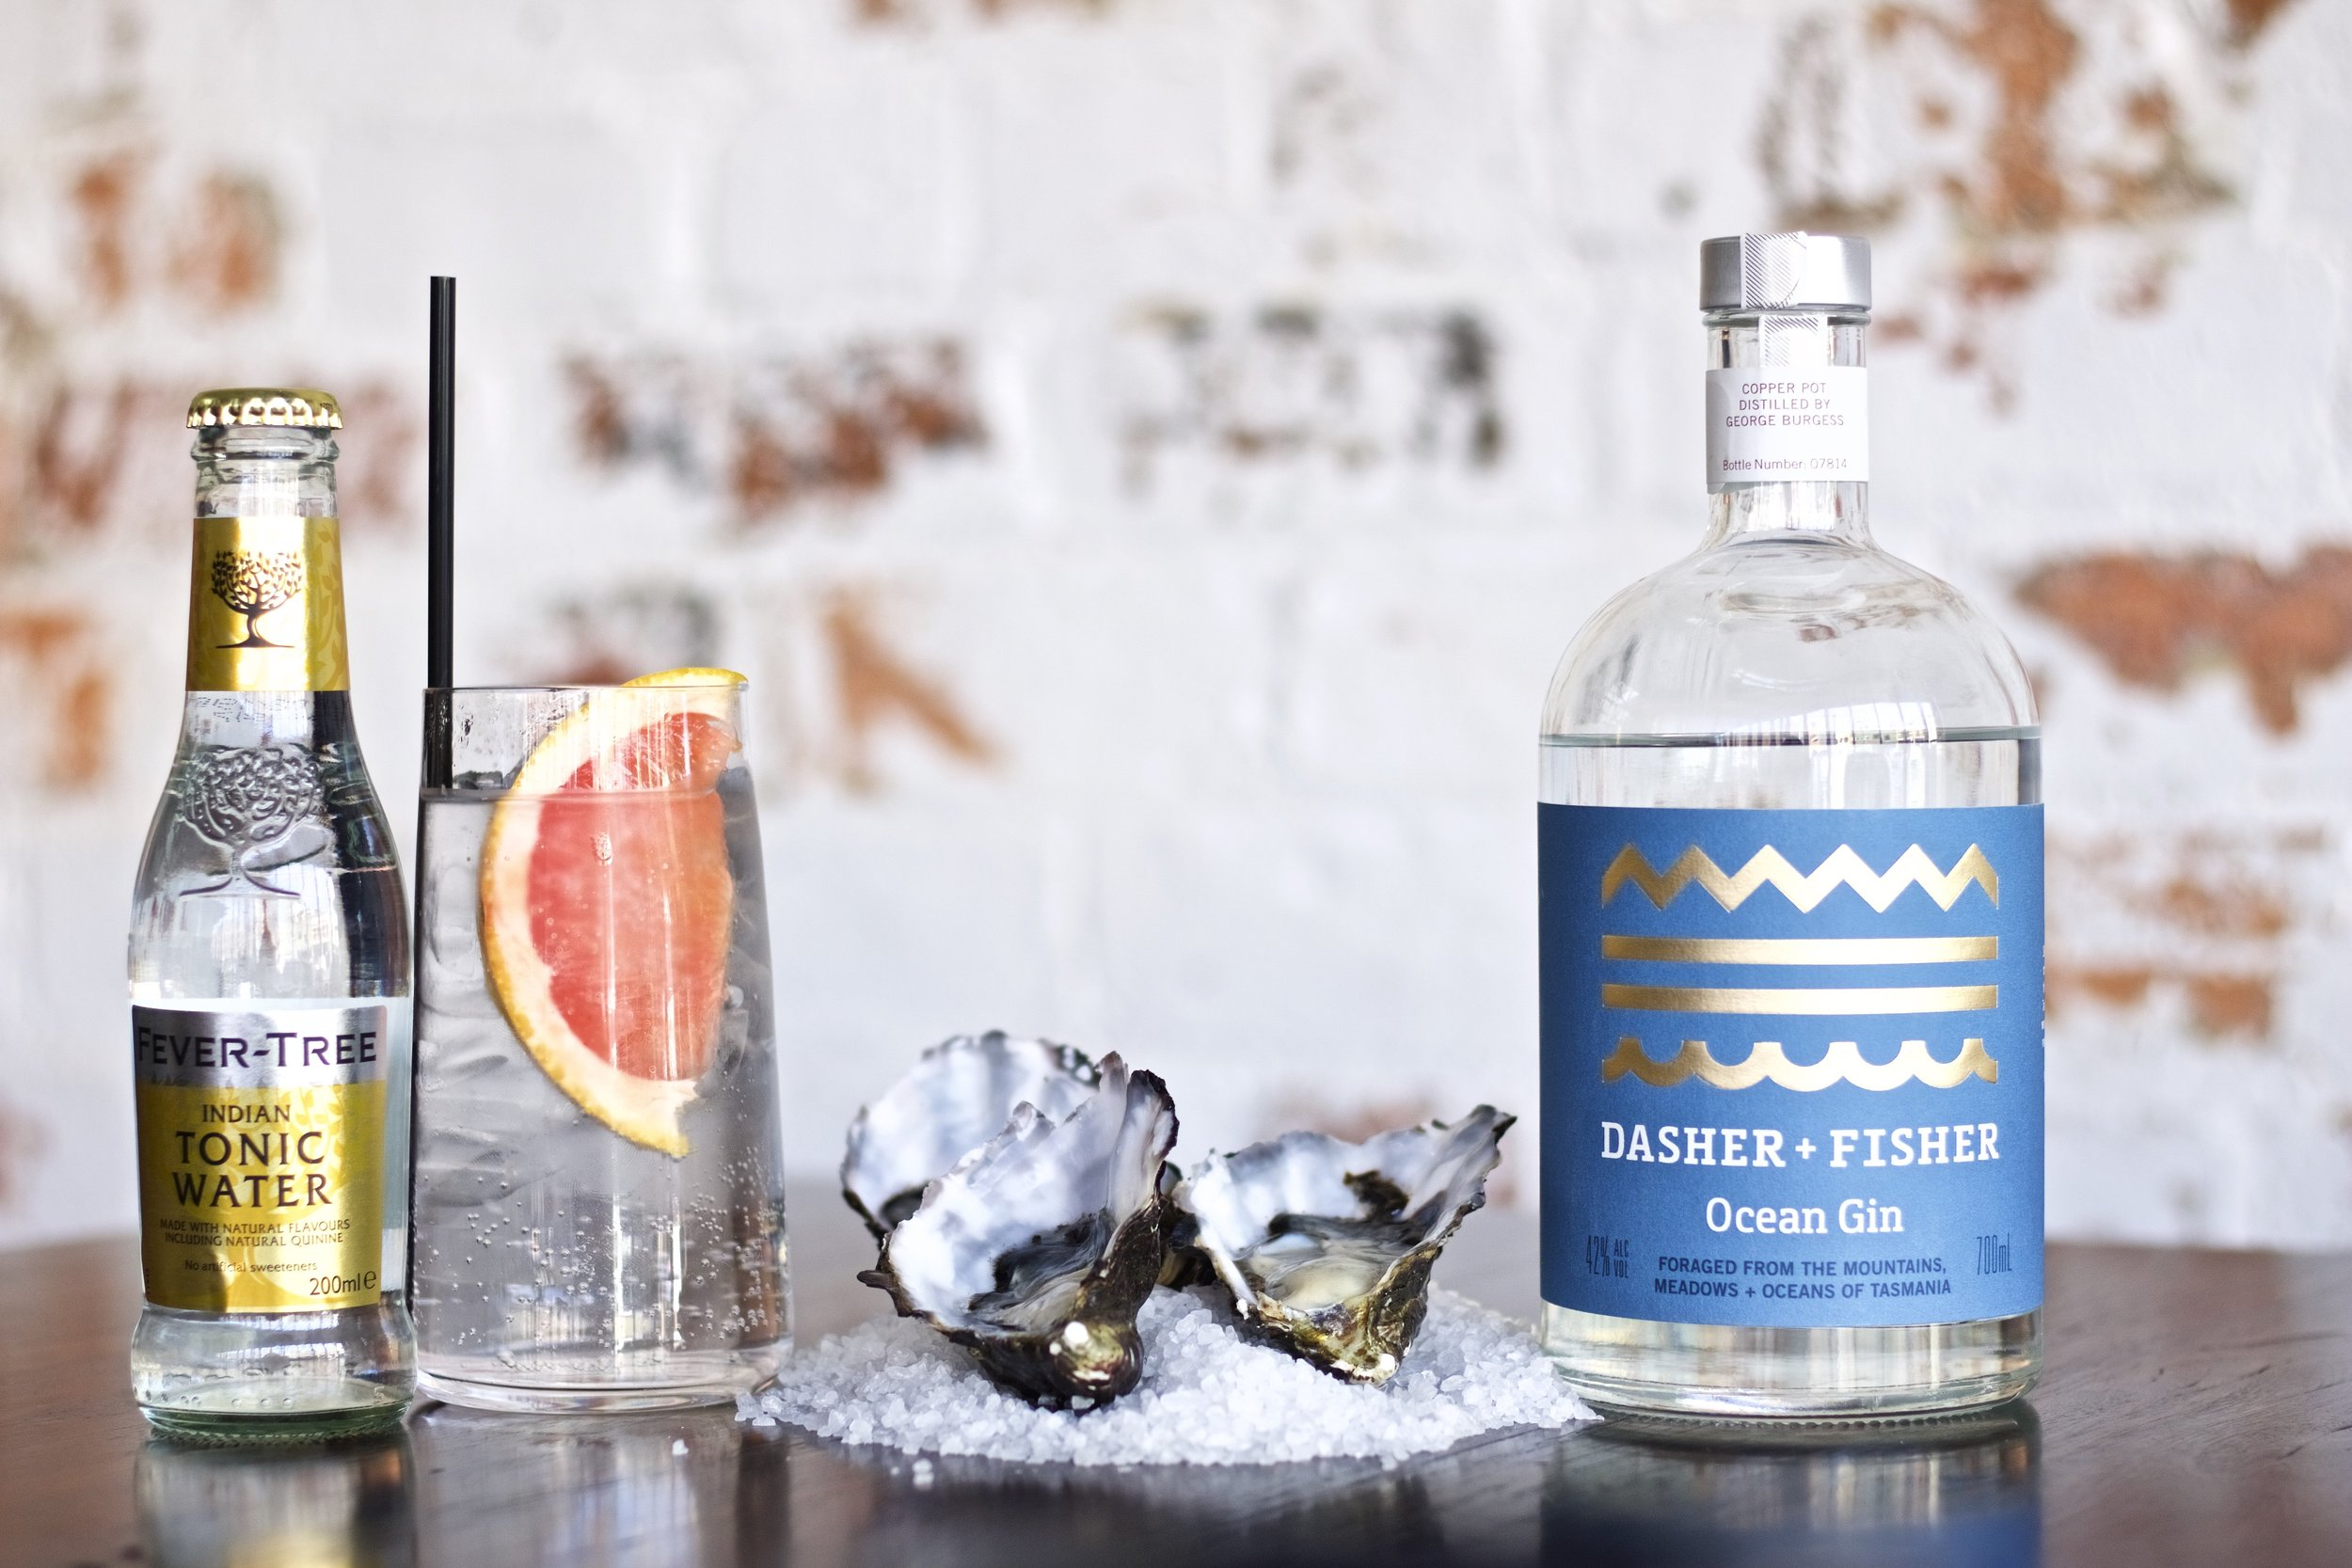 Our pick of some of George Burgess' gins. Sourced from Devenport, Tasmania.